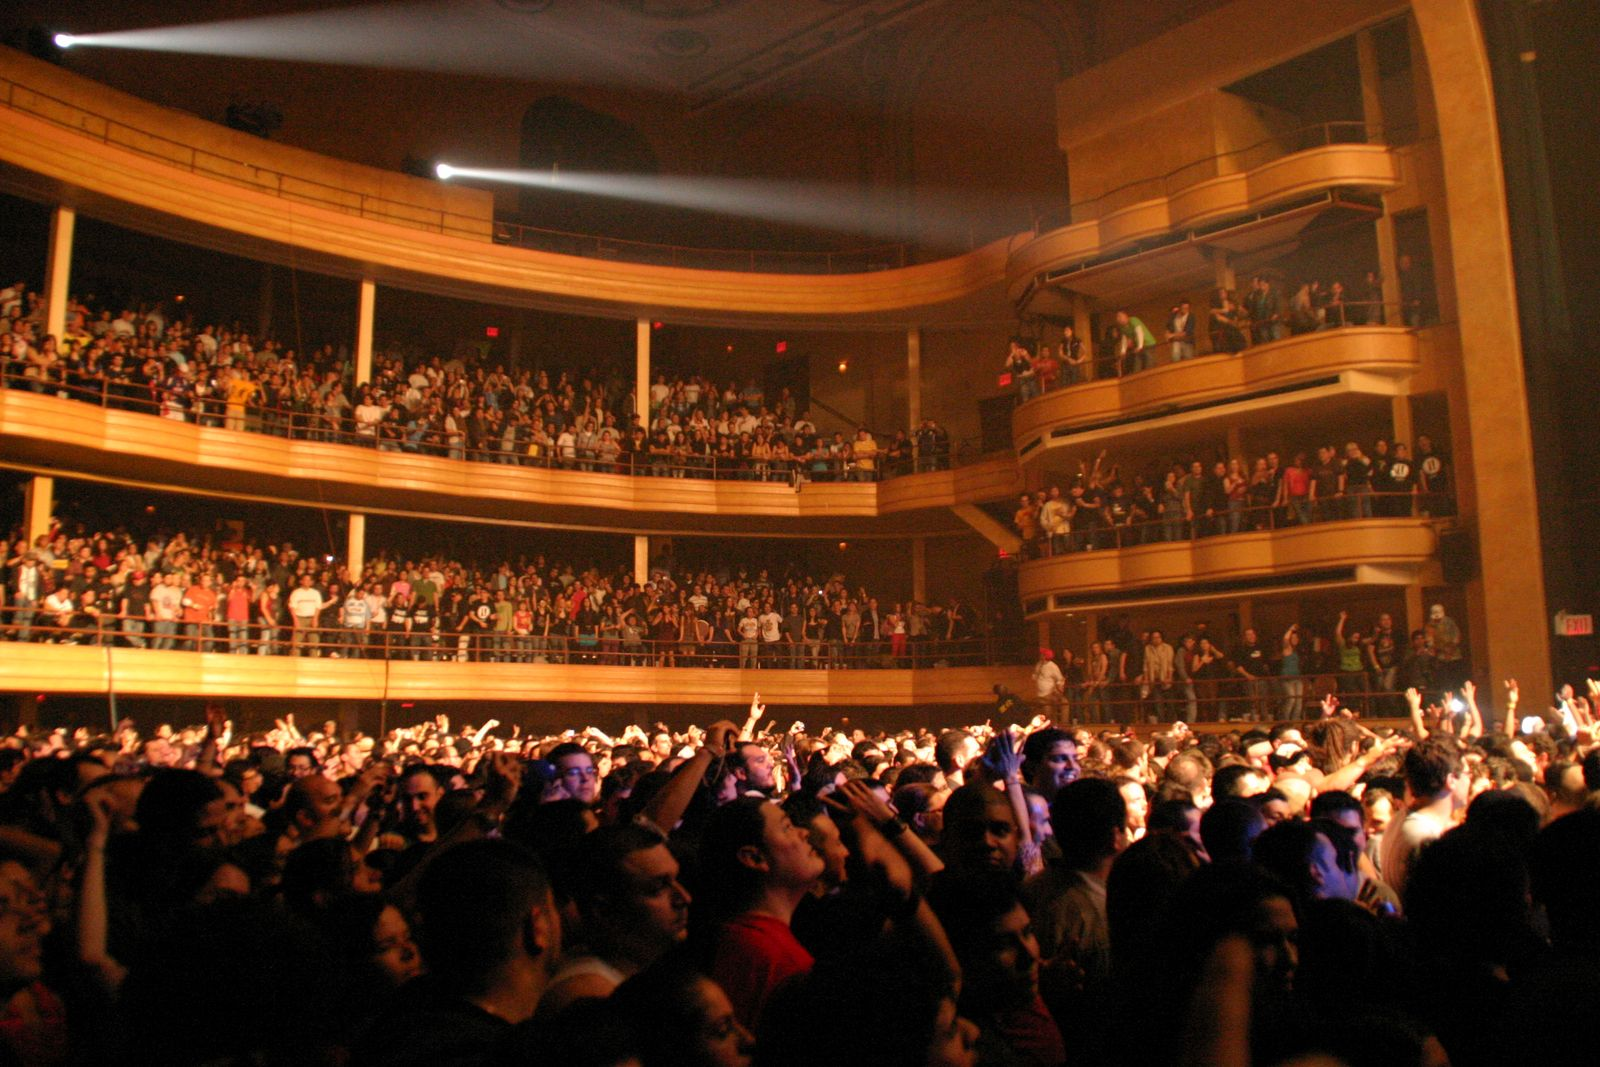 Hammerstein Ballroom | Pro Wrestling | FANDOM powered by Wikia